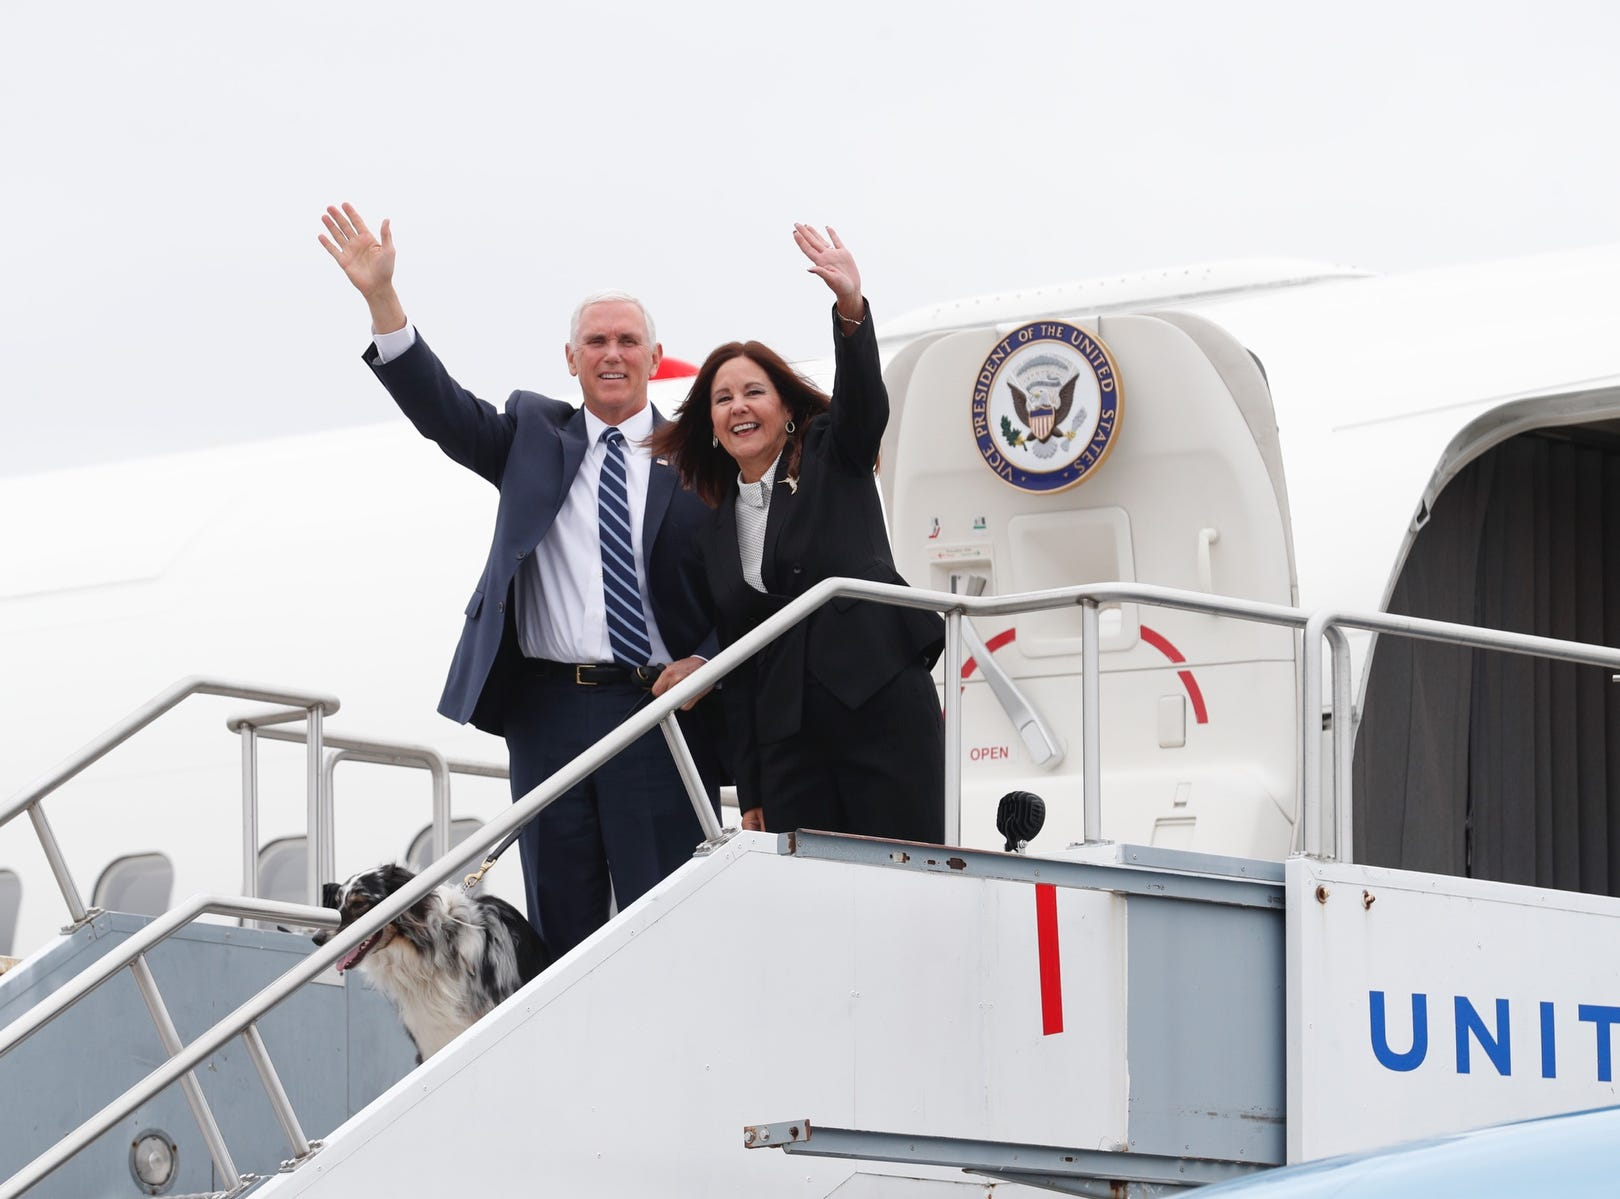 Vice President Mike Pence and his wife, Karen arrive at the Indianapolis International Airport on Friday, April 26, 2019. Pence will speak at the 2019 NRA-ILA's annual Leadership Forum at Lucas Oil Stadium.